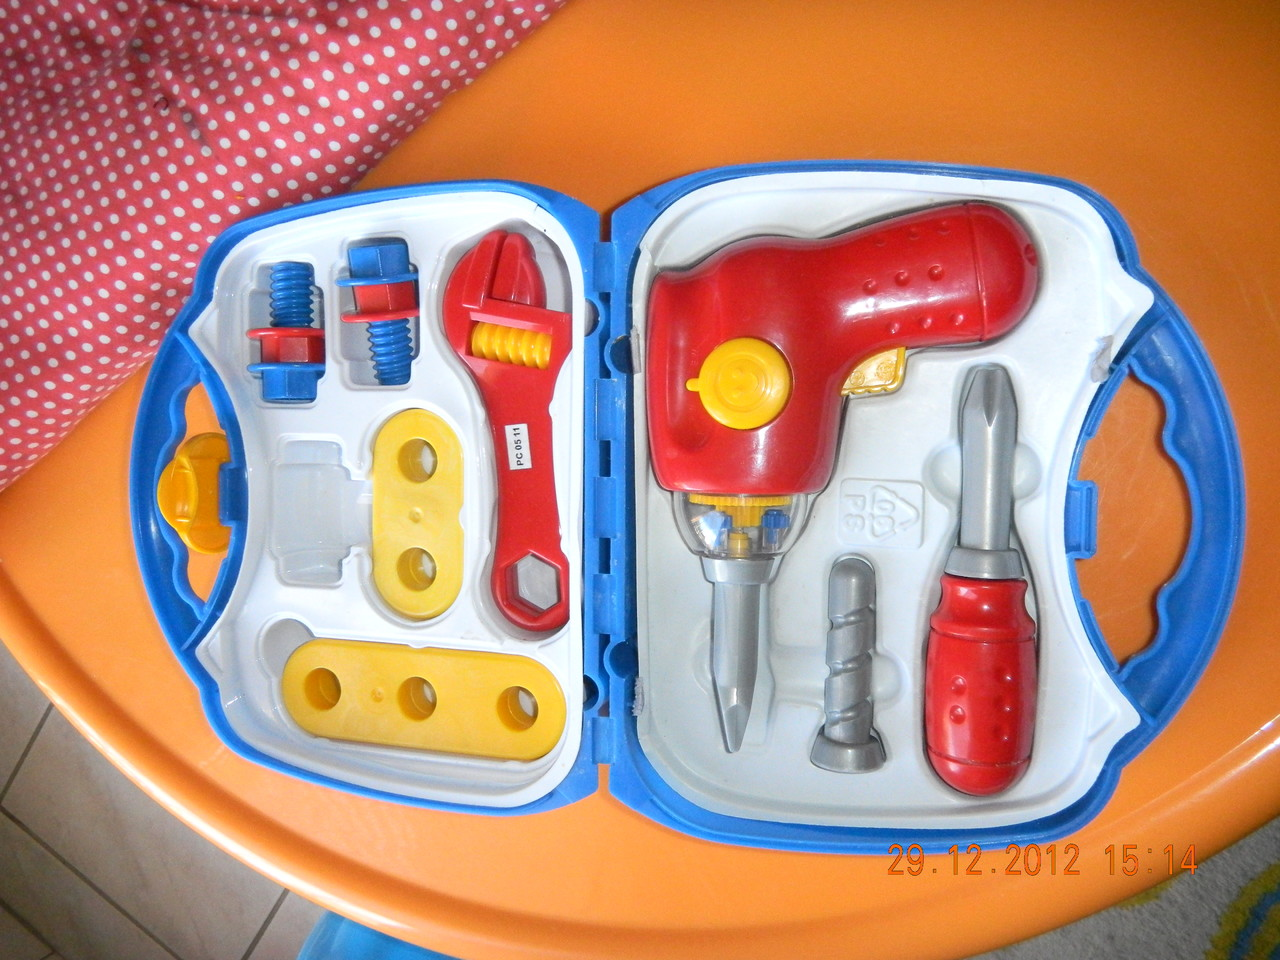 malette d'outils